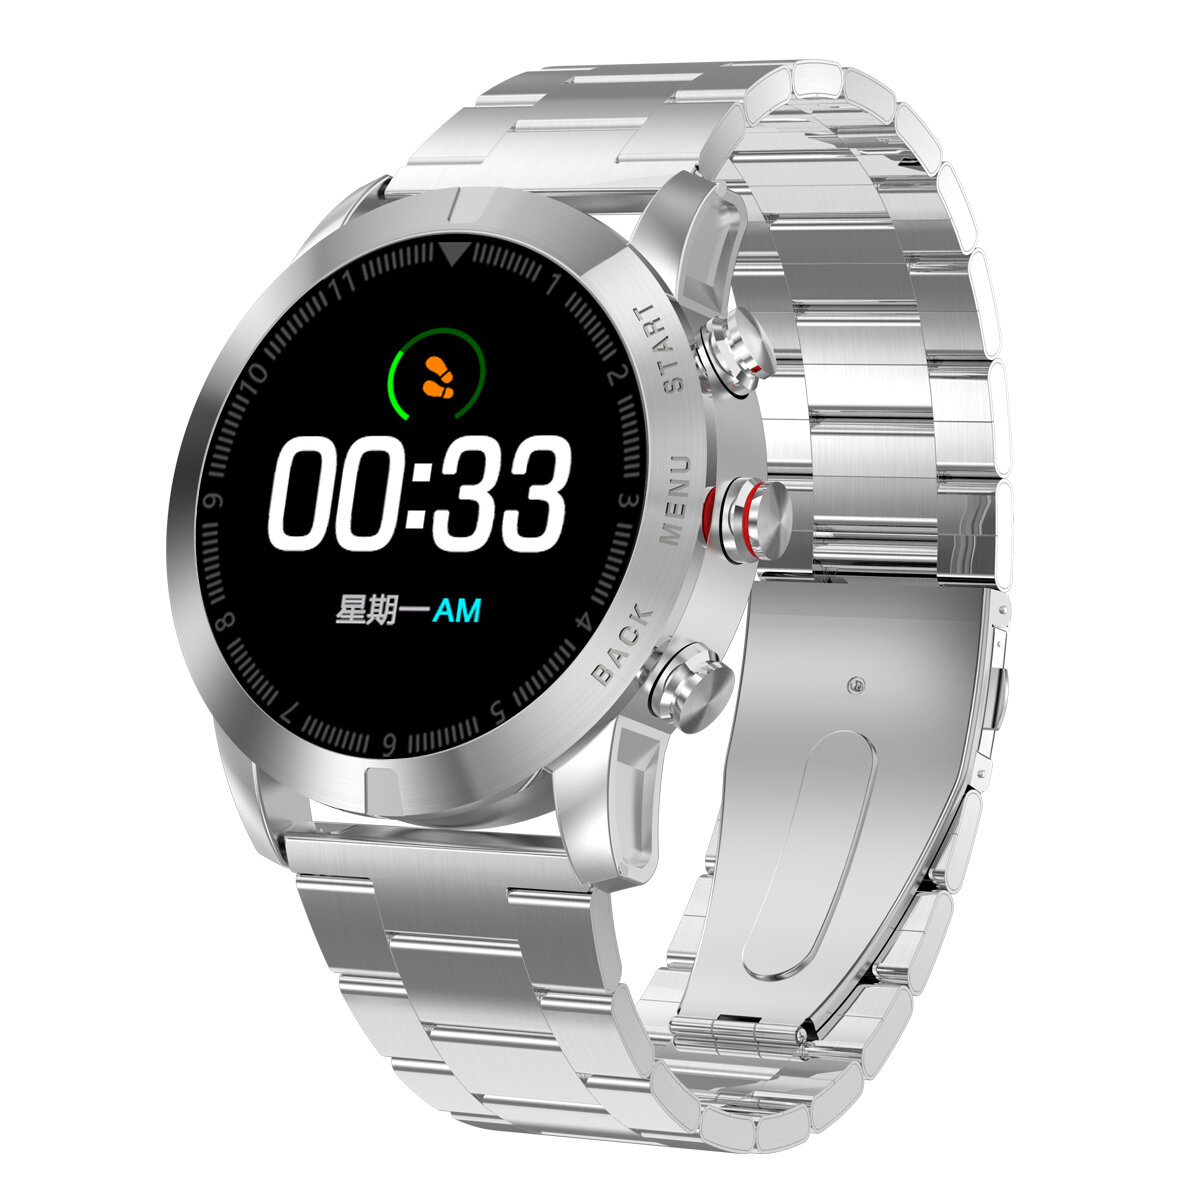 DT NO.1 S10 Full Touch Wristband PPG+HRV Heart Rate Blood Pressure Monitor Large Battery Caller ID Display Sport Smart Watch